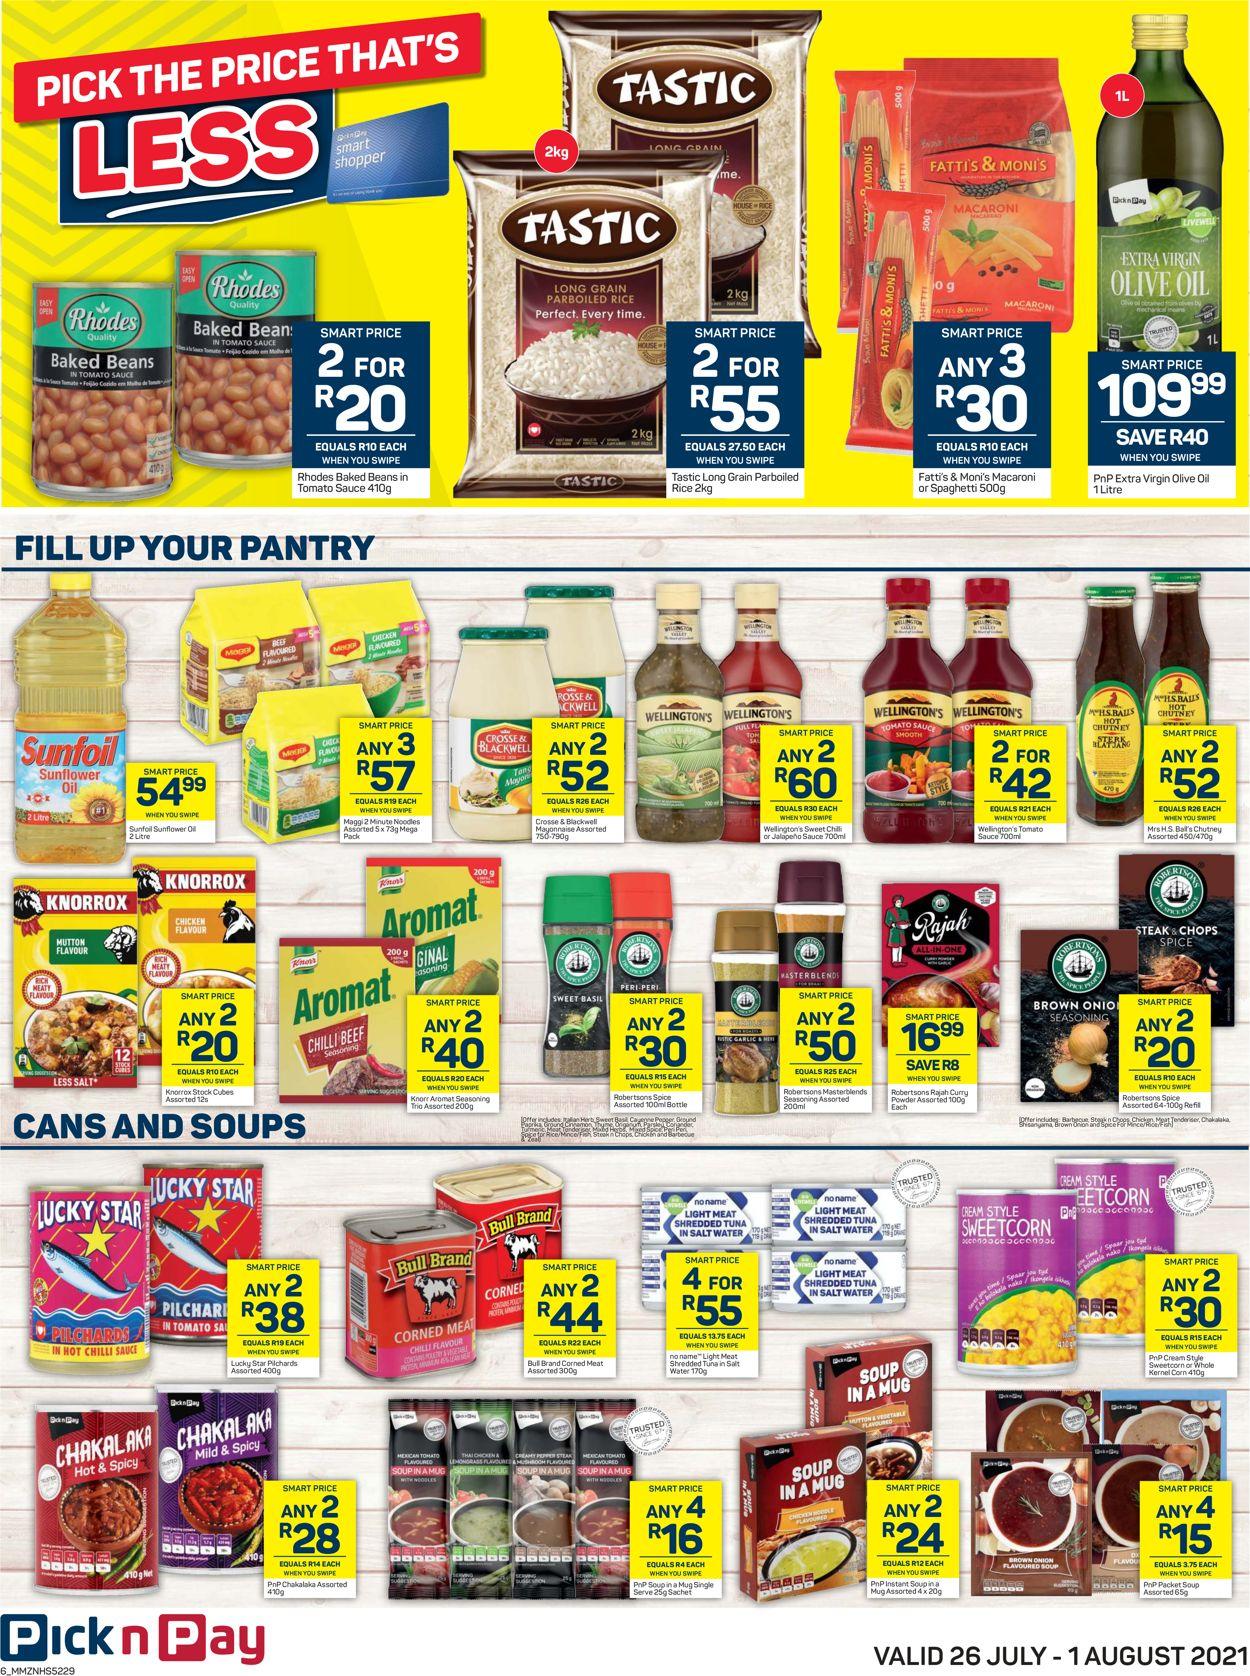 Pick n Pay Catalogue - 2021/07/26-2021/08/01 (Page 6)